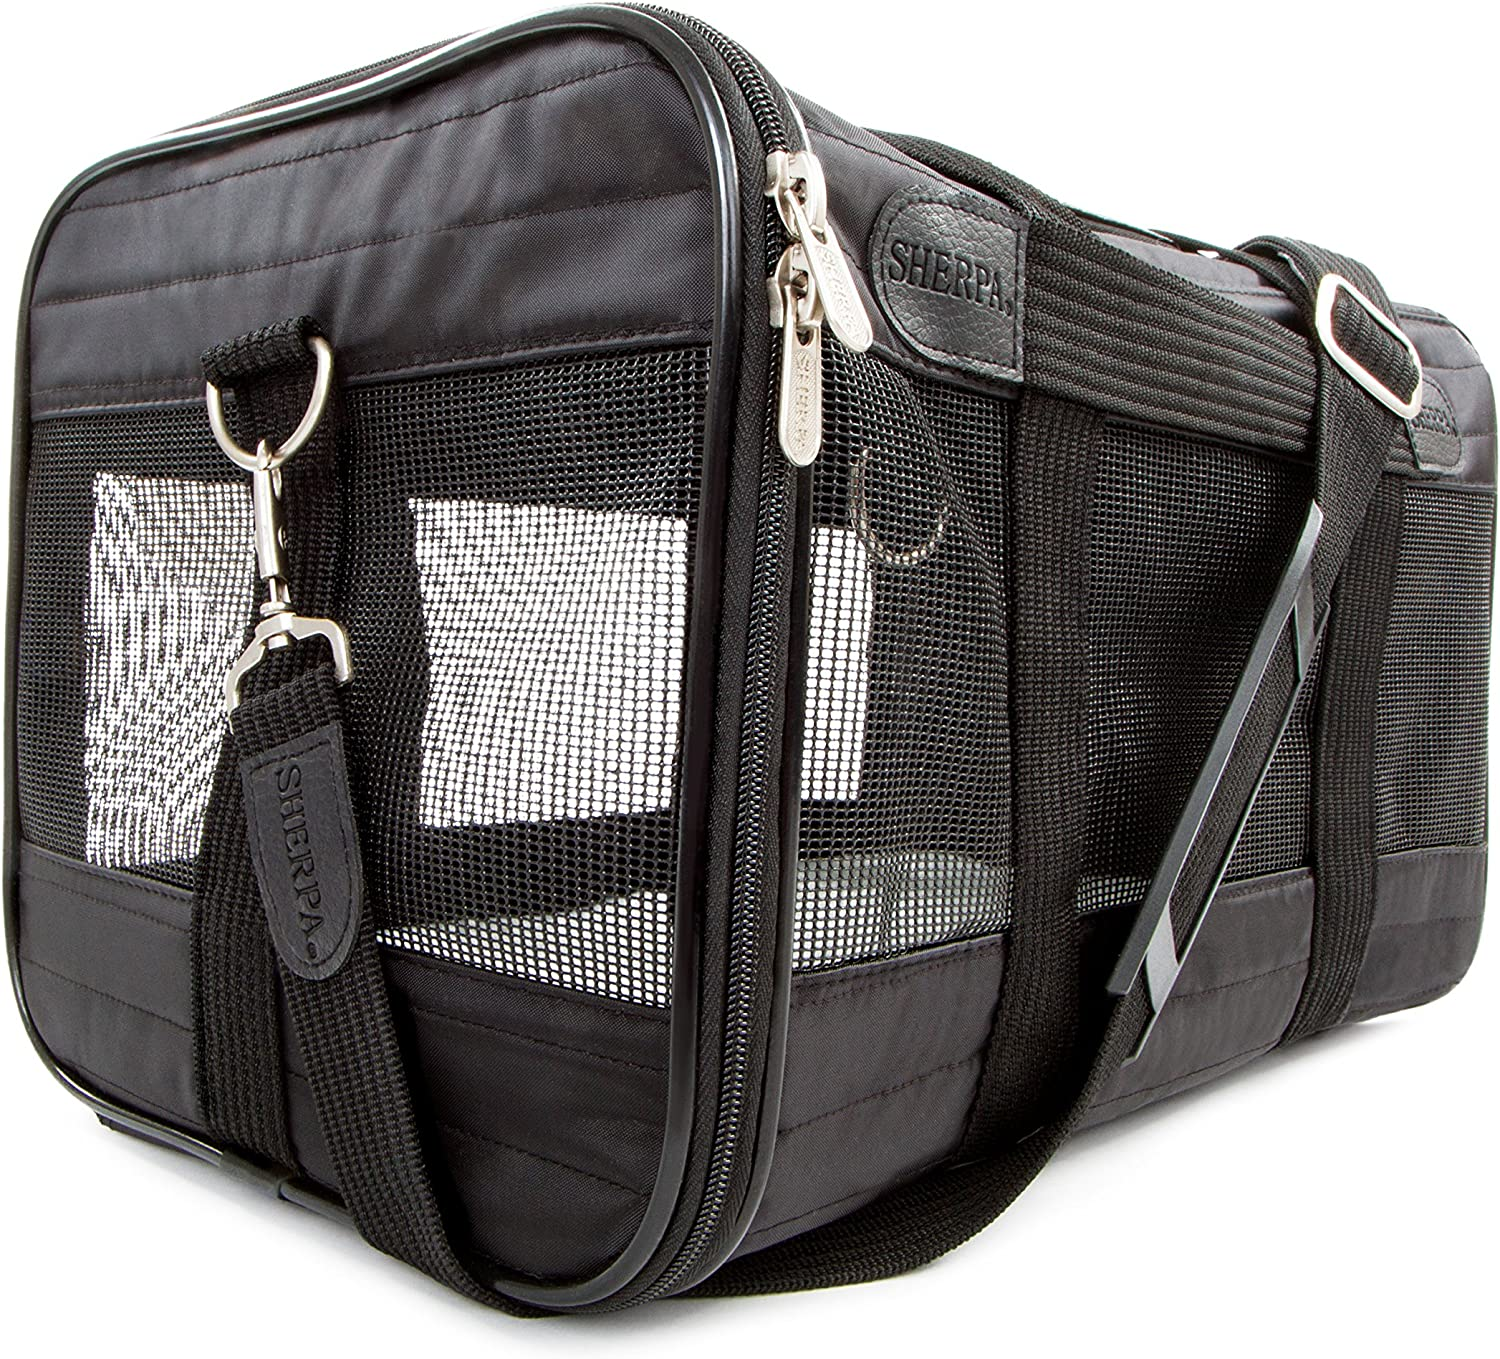 Best Cat Carrier For Car Travel 13